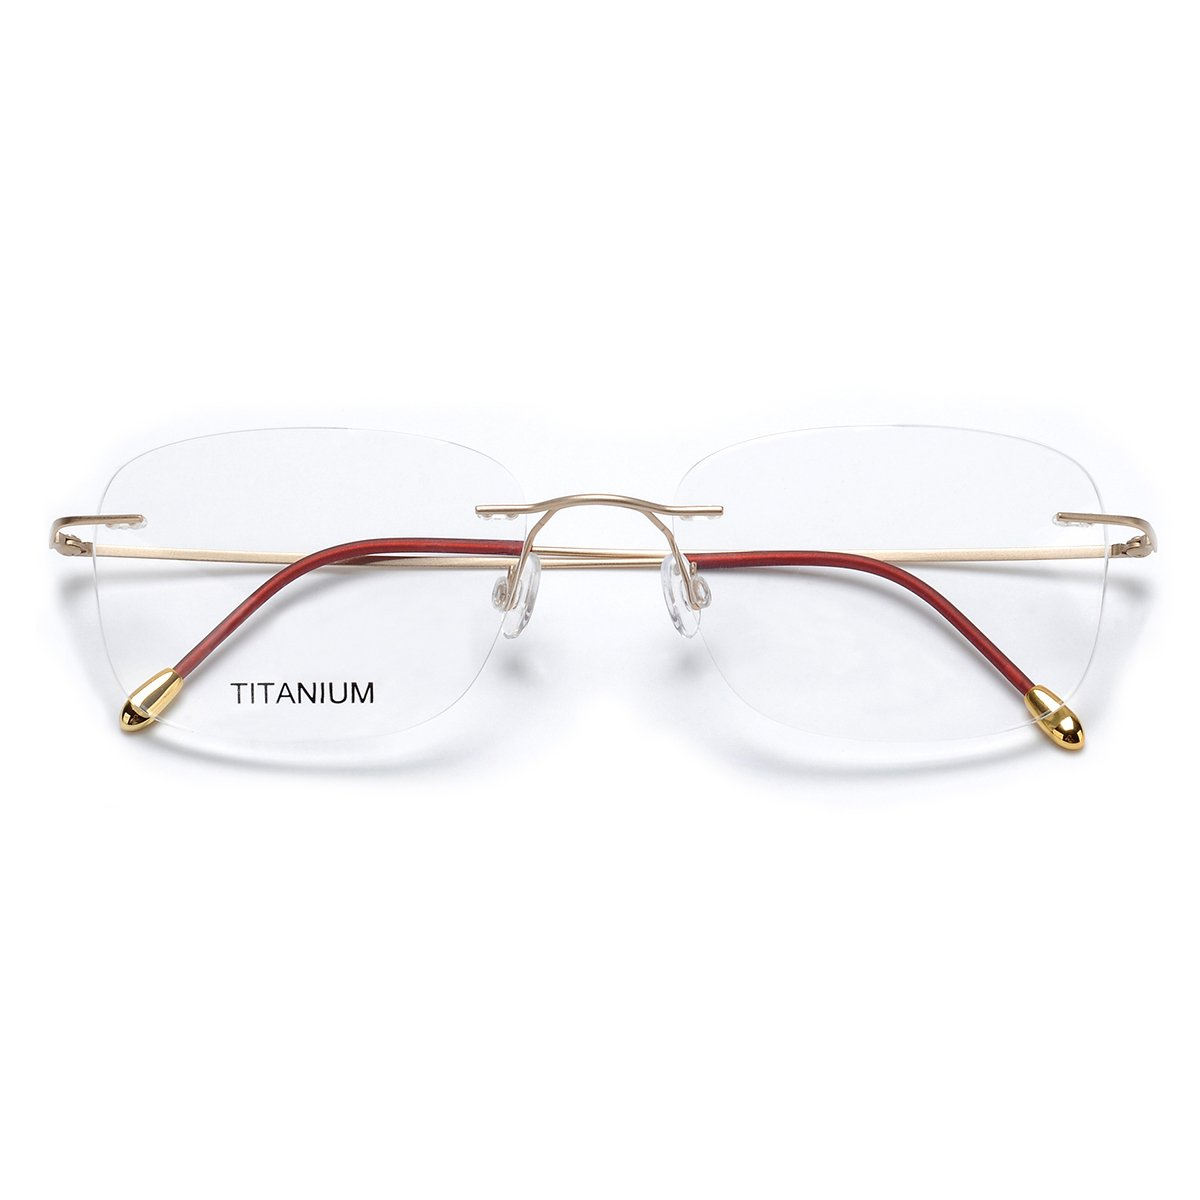 93c64dec35 Gafas de titanio con montura al aire DUKEROY 16010; disponibles de 4 colores,  estilo vintage, color dorado, unisex dorado Matt Gold 55-18-140: Amazon.es:  ...